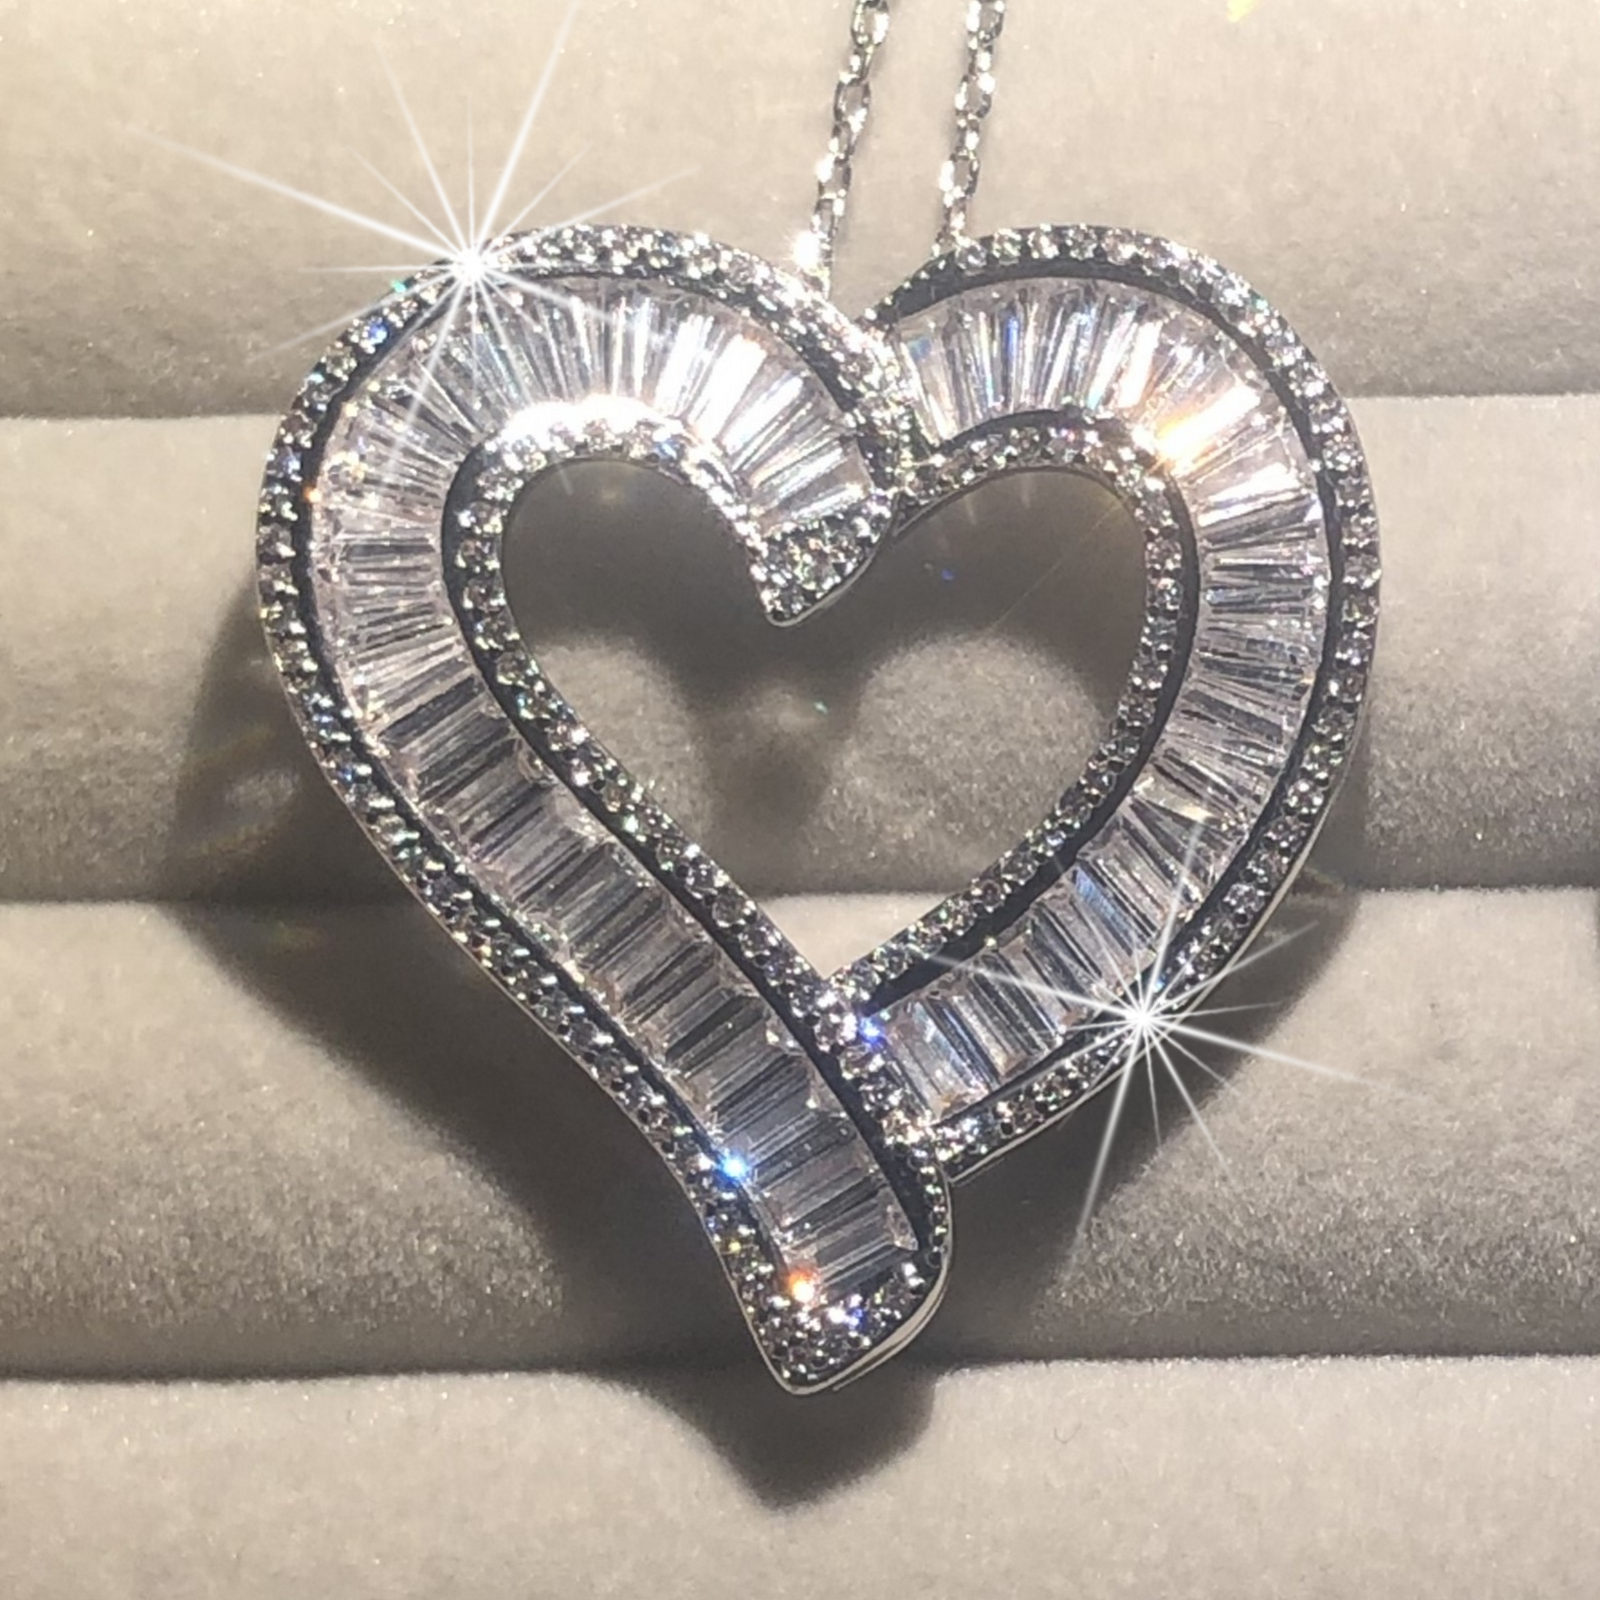 Luxury 925 Silver Heart Pendant Chain Necklace Women Sparkling Princess-cut Topaz Simulated Diamond Necklace Wedding Jewelry